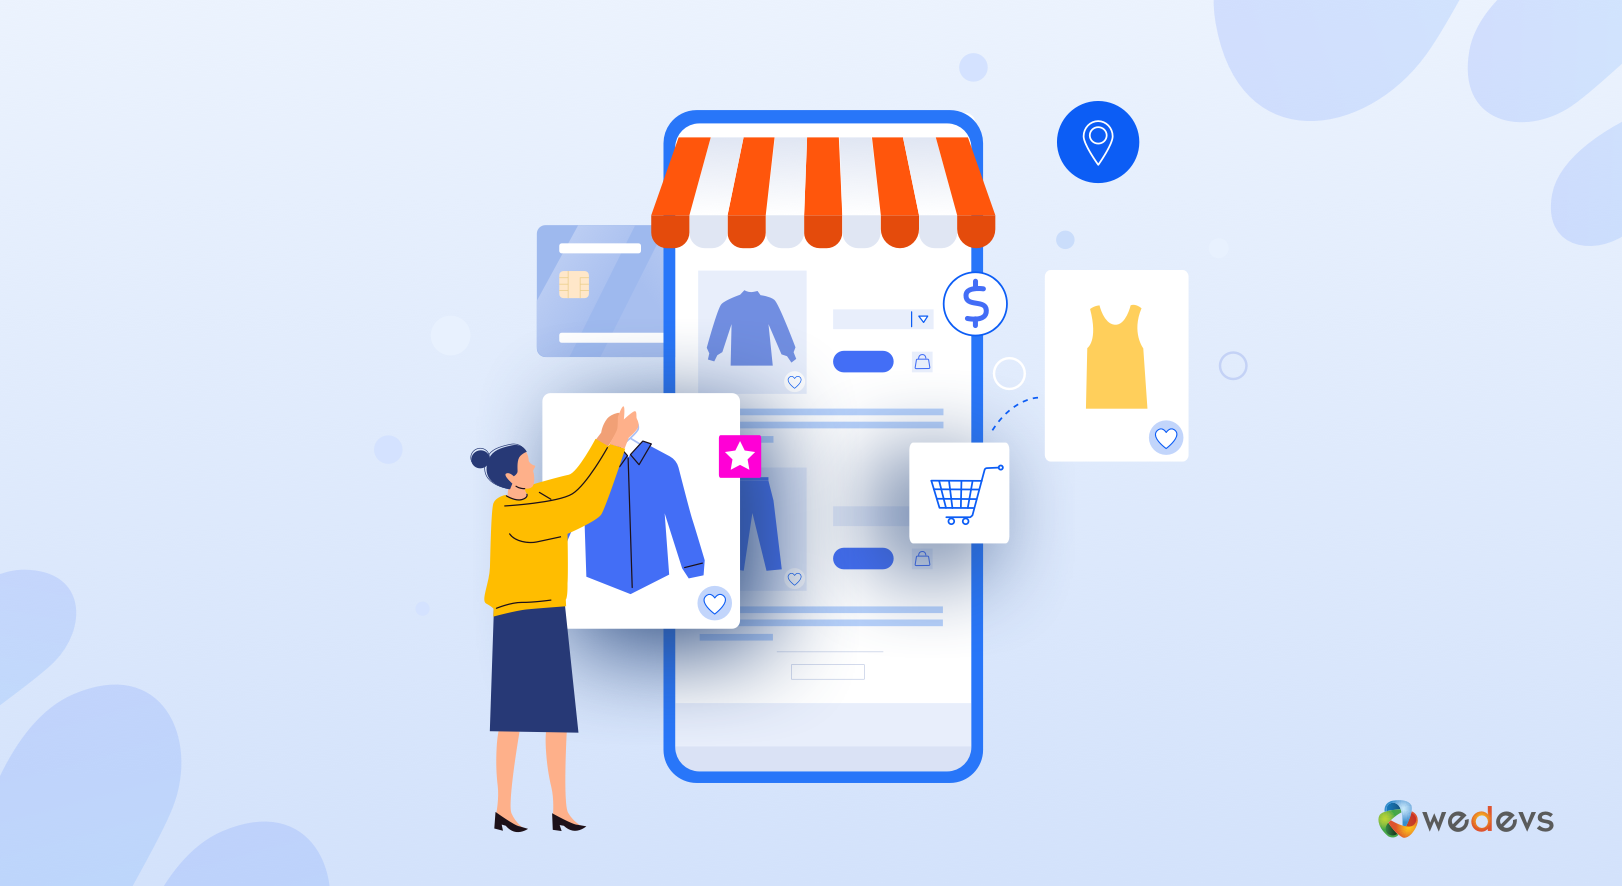 How To Customize Your WooCommerce Store Using Happy Addons